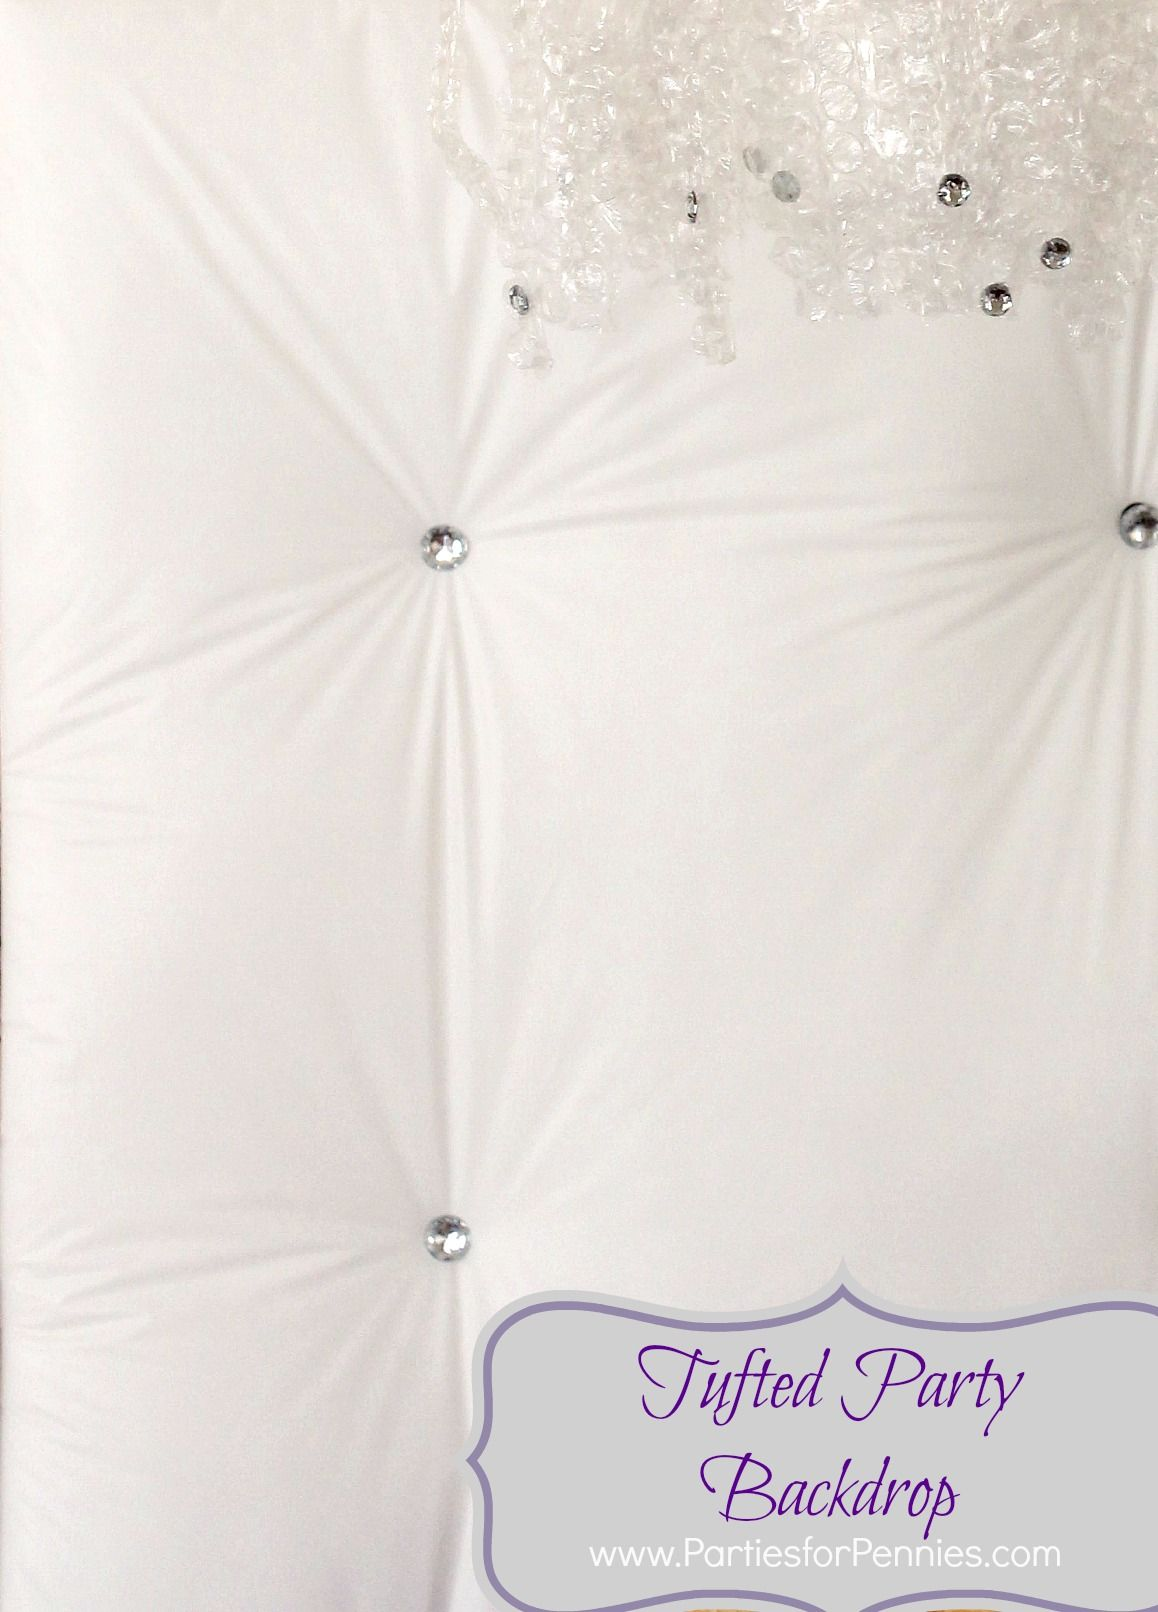 Home   Party backdrops, Backdrops and White party decorations